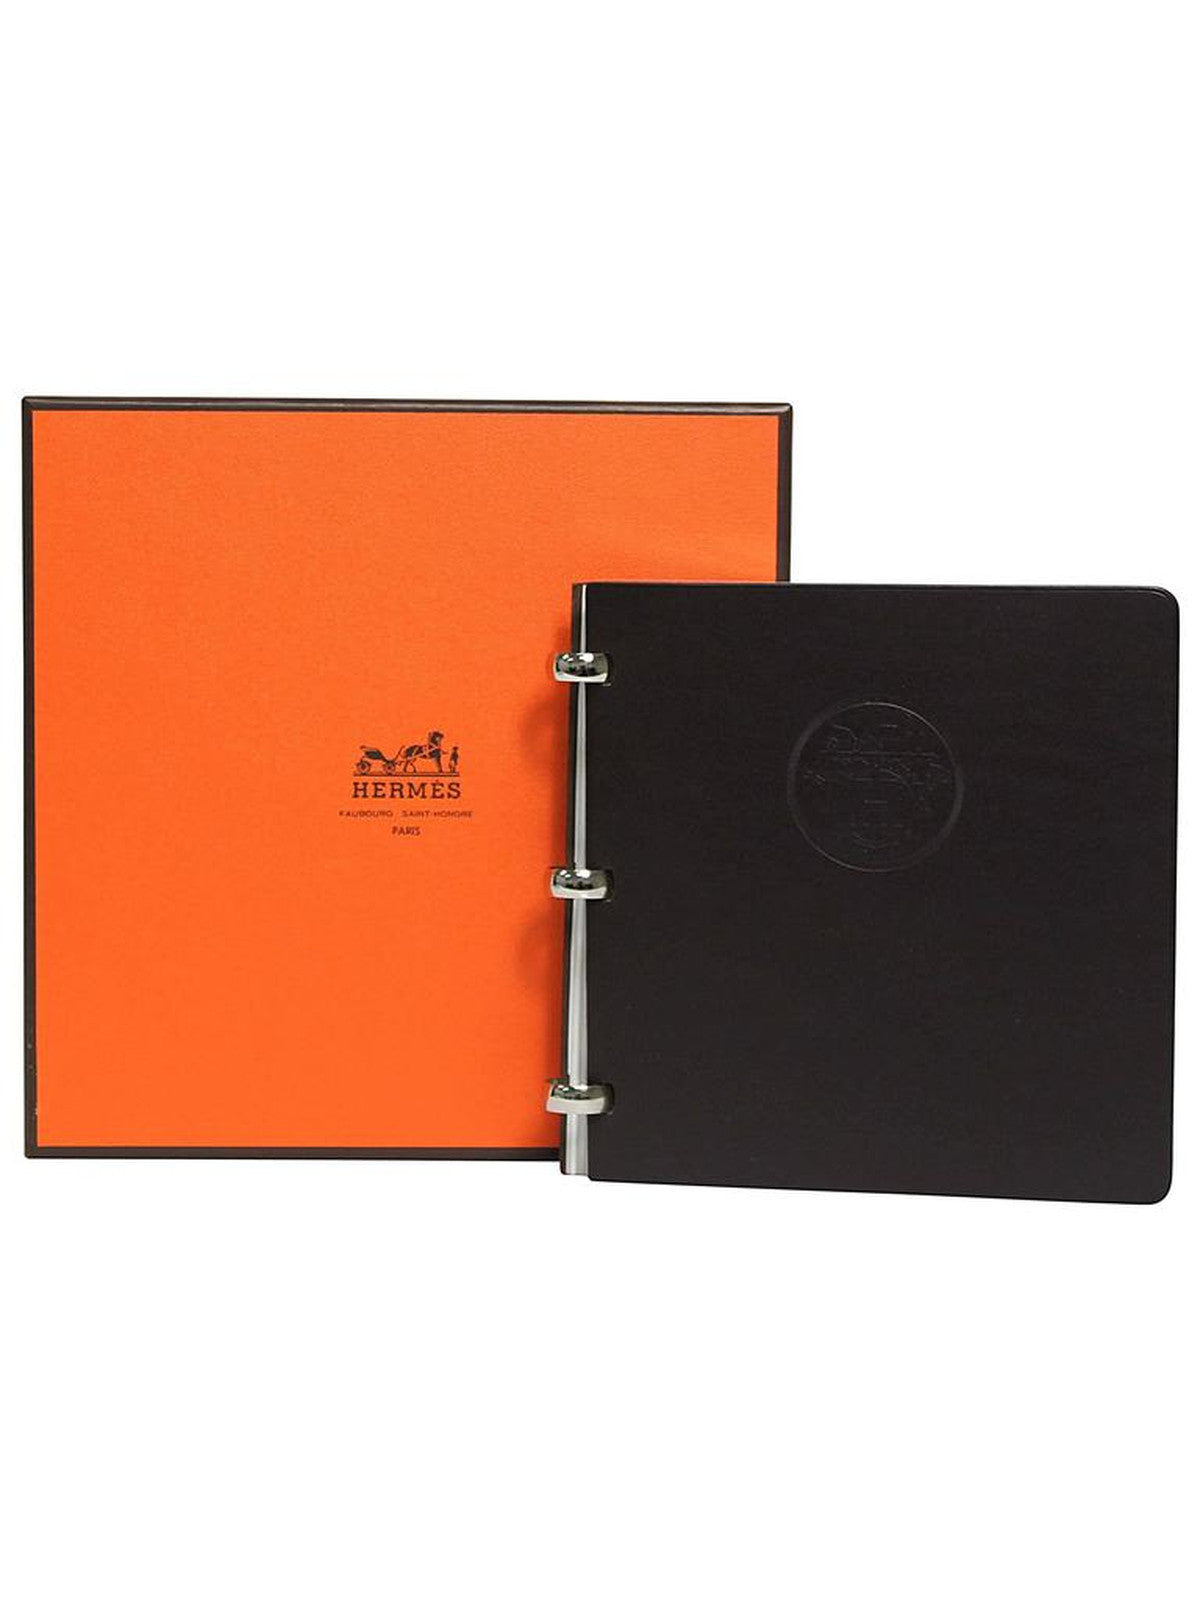 Hermès Leather Note Pad